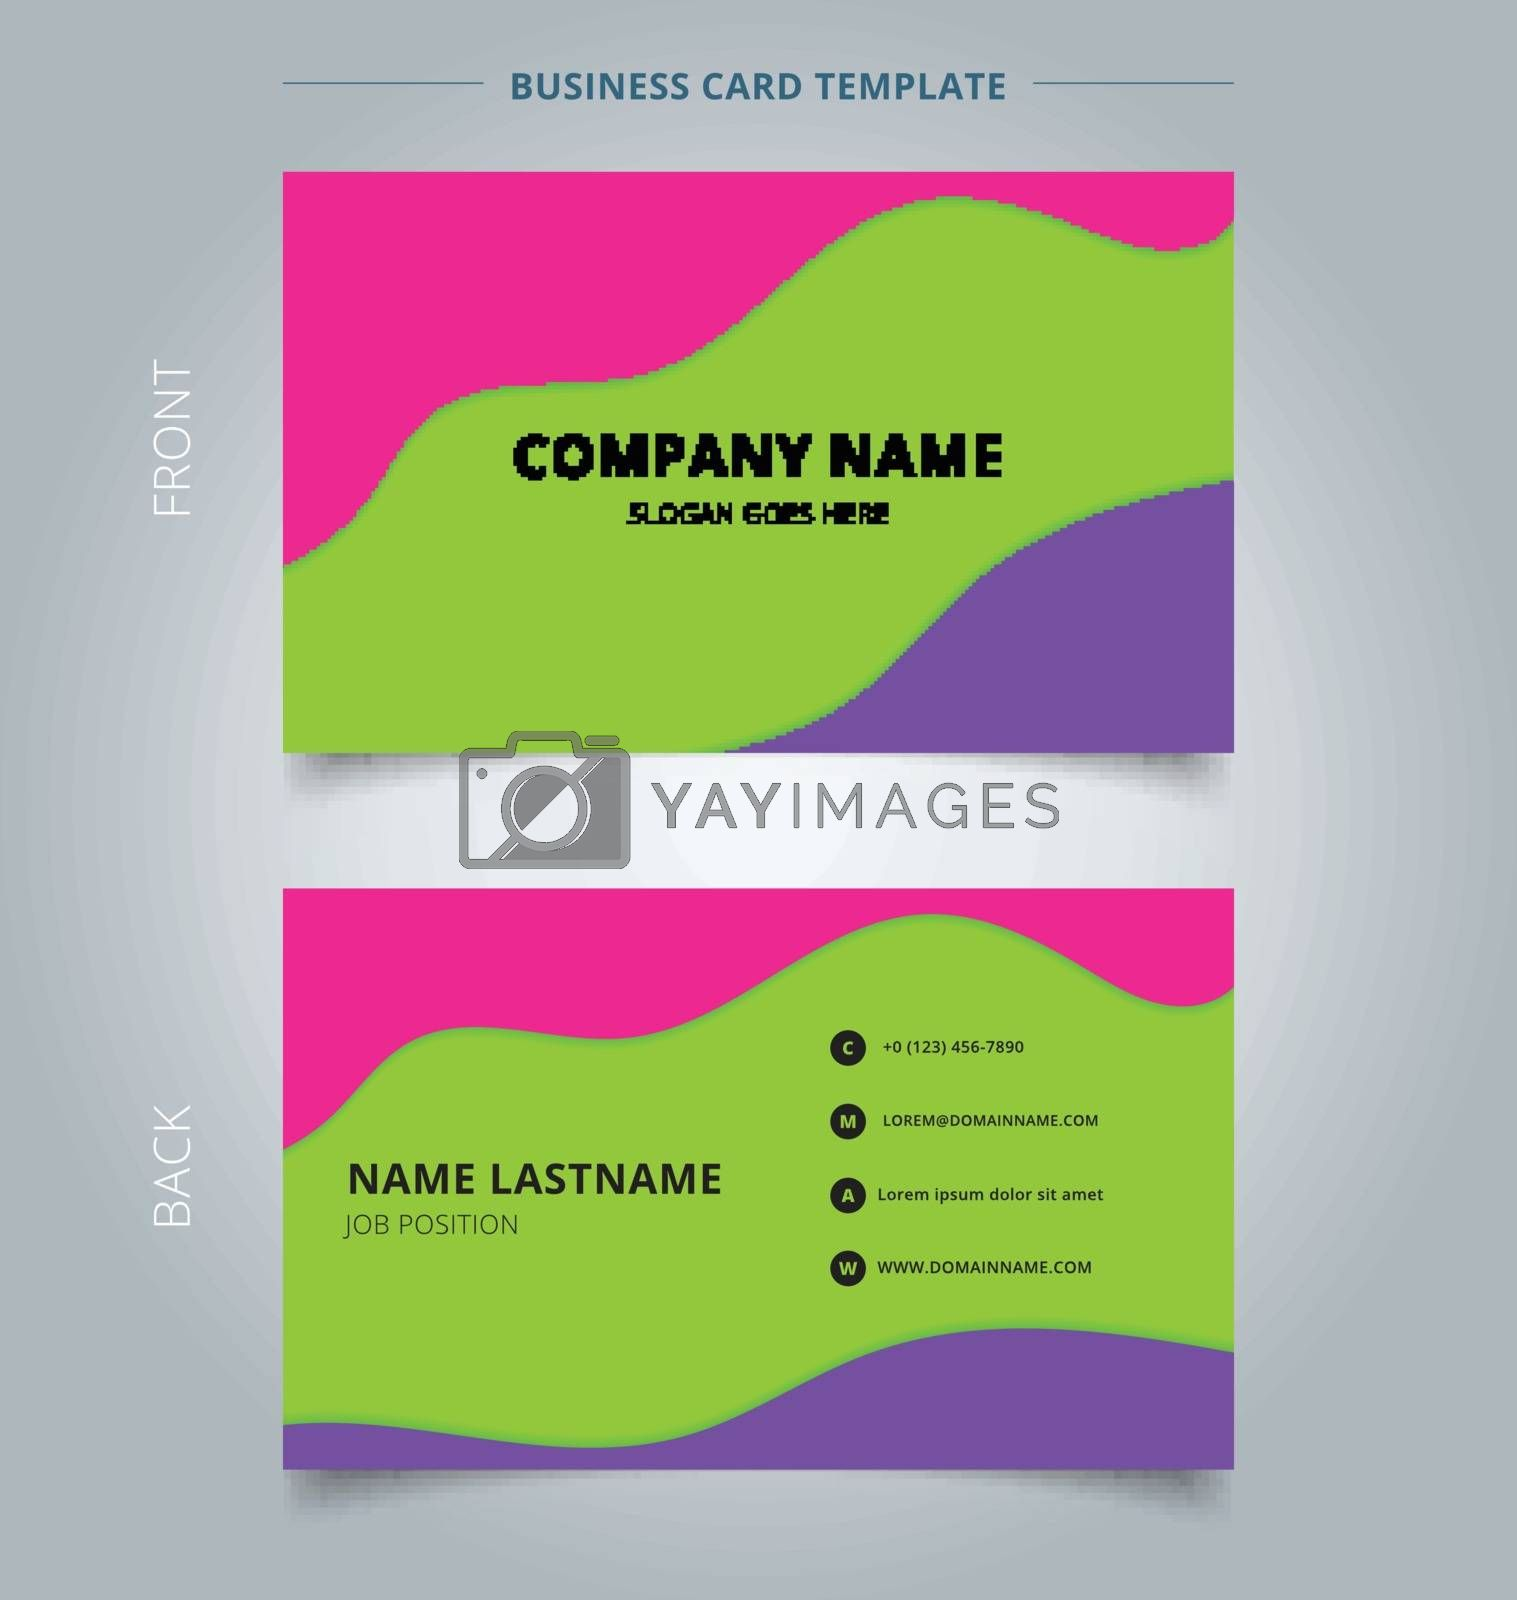 Trendy abstract business name card template layout modern style. Fluid or liquid wave layer green, purple and pink , vivid color. Vector illustration